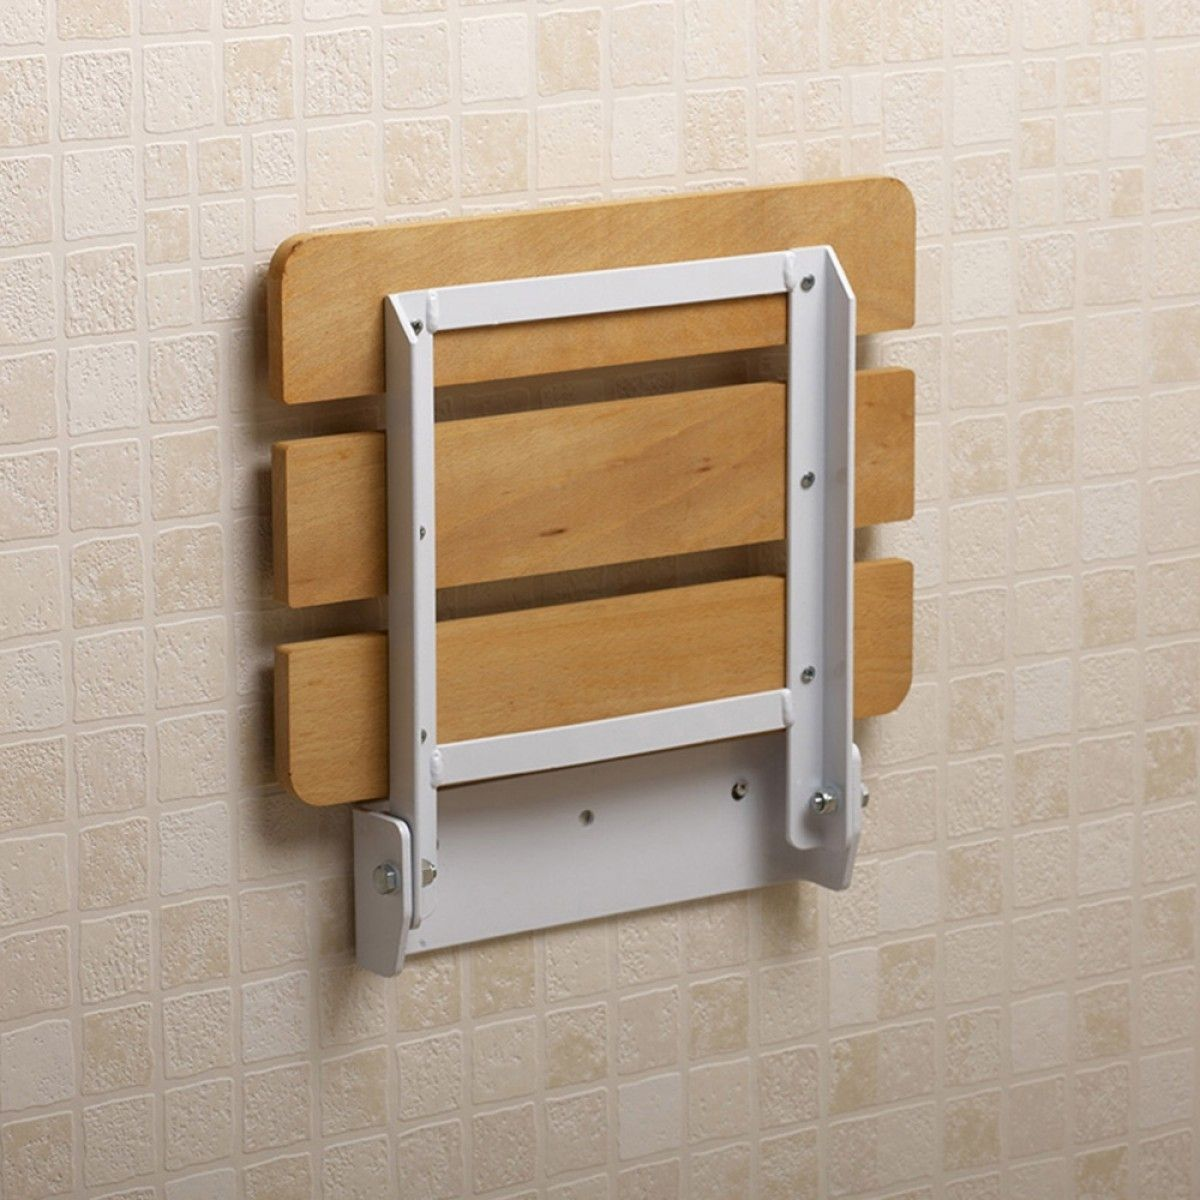 Small Bathroom Spaces With Wood Wall Mounted Folding Shower Seats Throughout Fold Down Shower Seat Wall Mounted Folding Table Wall Mounted Table Folding Walls